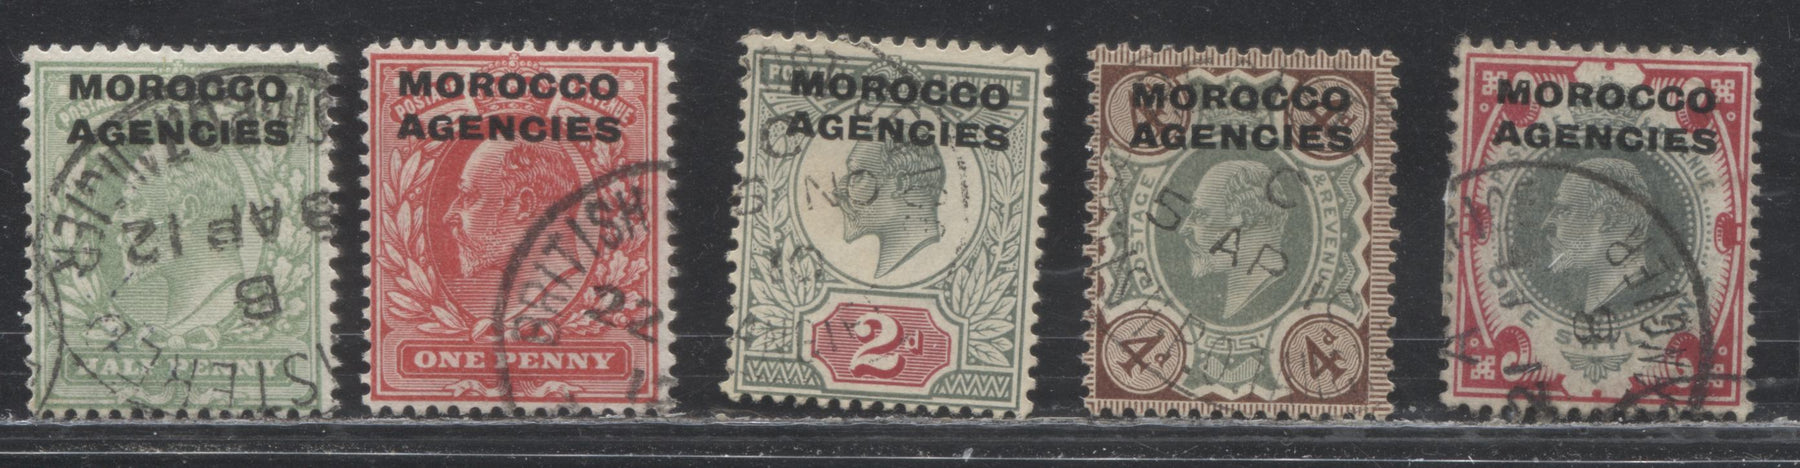 Morocco Agencies British Currency #201/207 (SG#31/37) 1/2d Pale Yellow Green - 1/- Dull Green Carmine, King Edward VII 1902-1913 Overprinted Great Britain Keyplate Issue, 5 Fine and VF Used Stamps